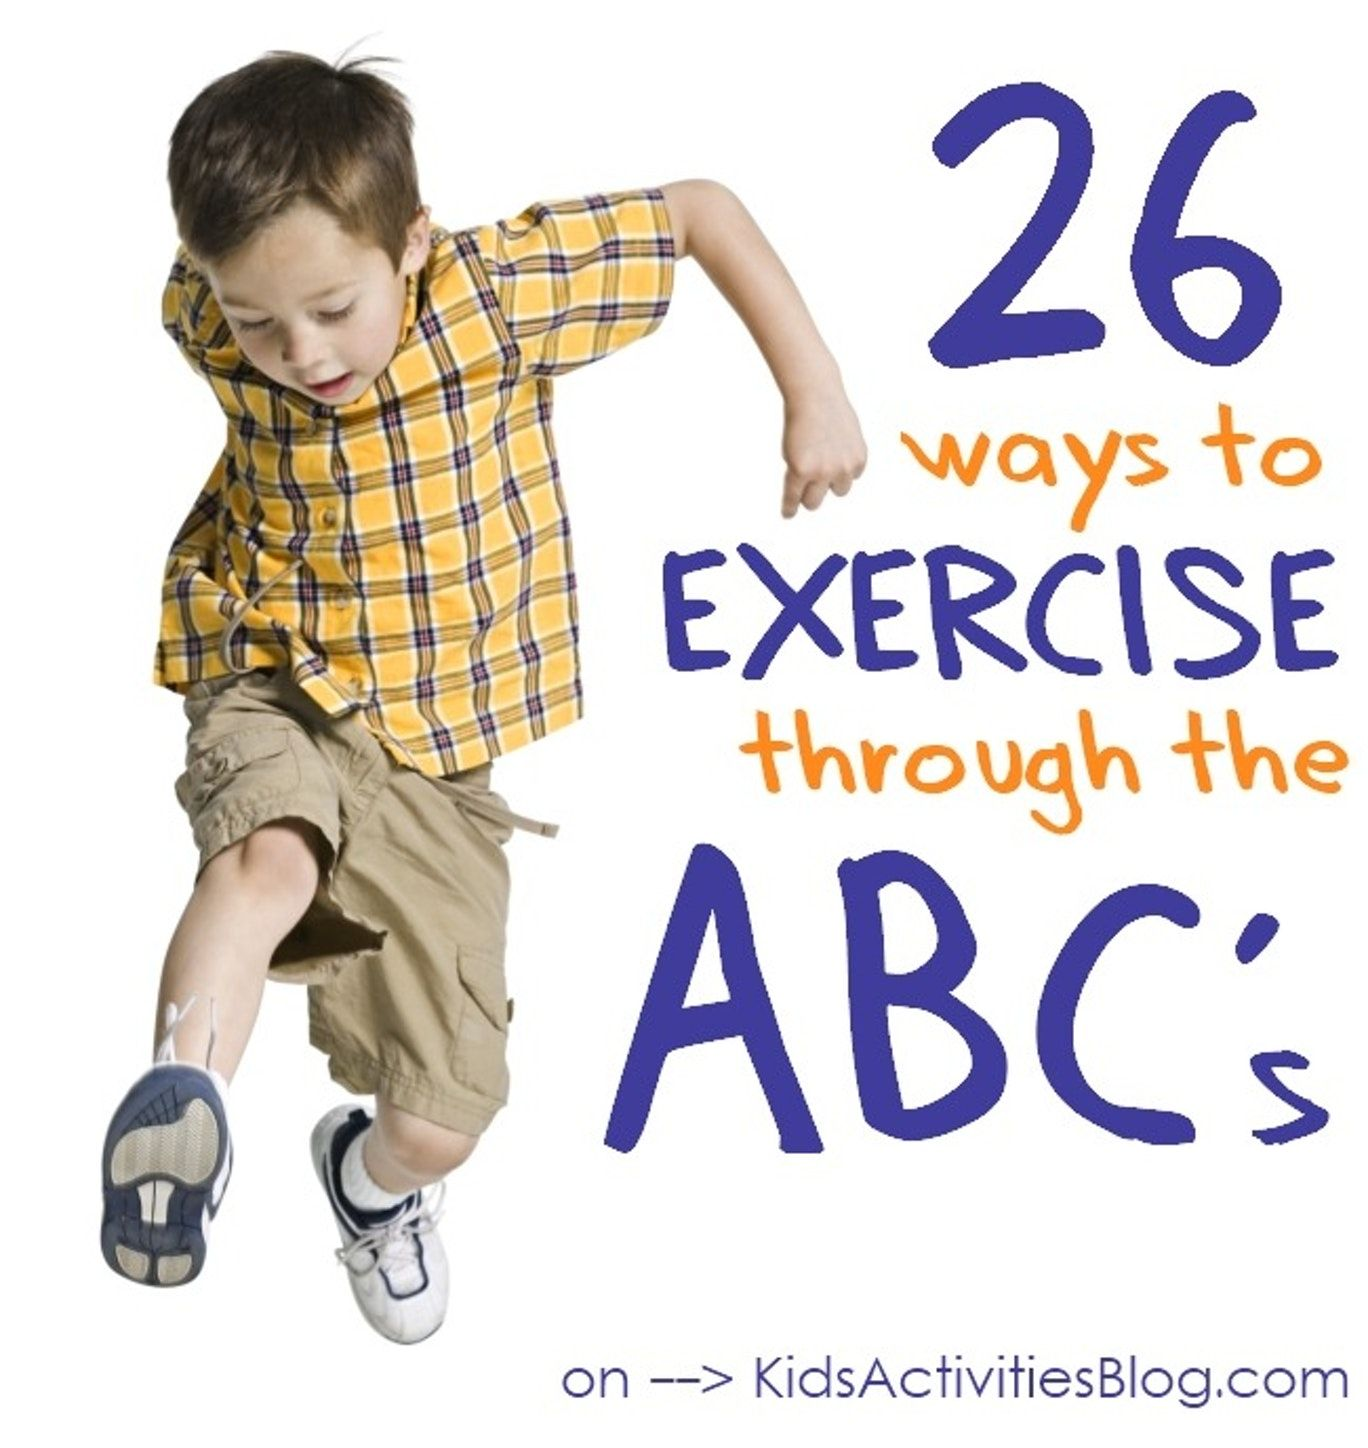 Make Physical Fitness Fun Alphabet Exercises